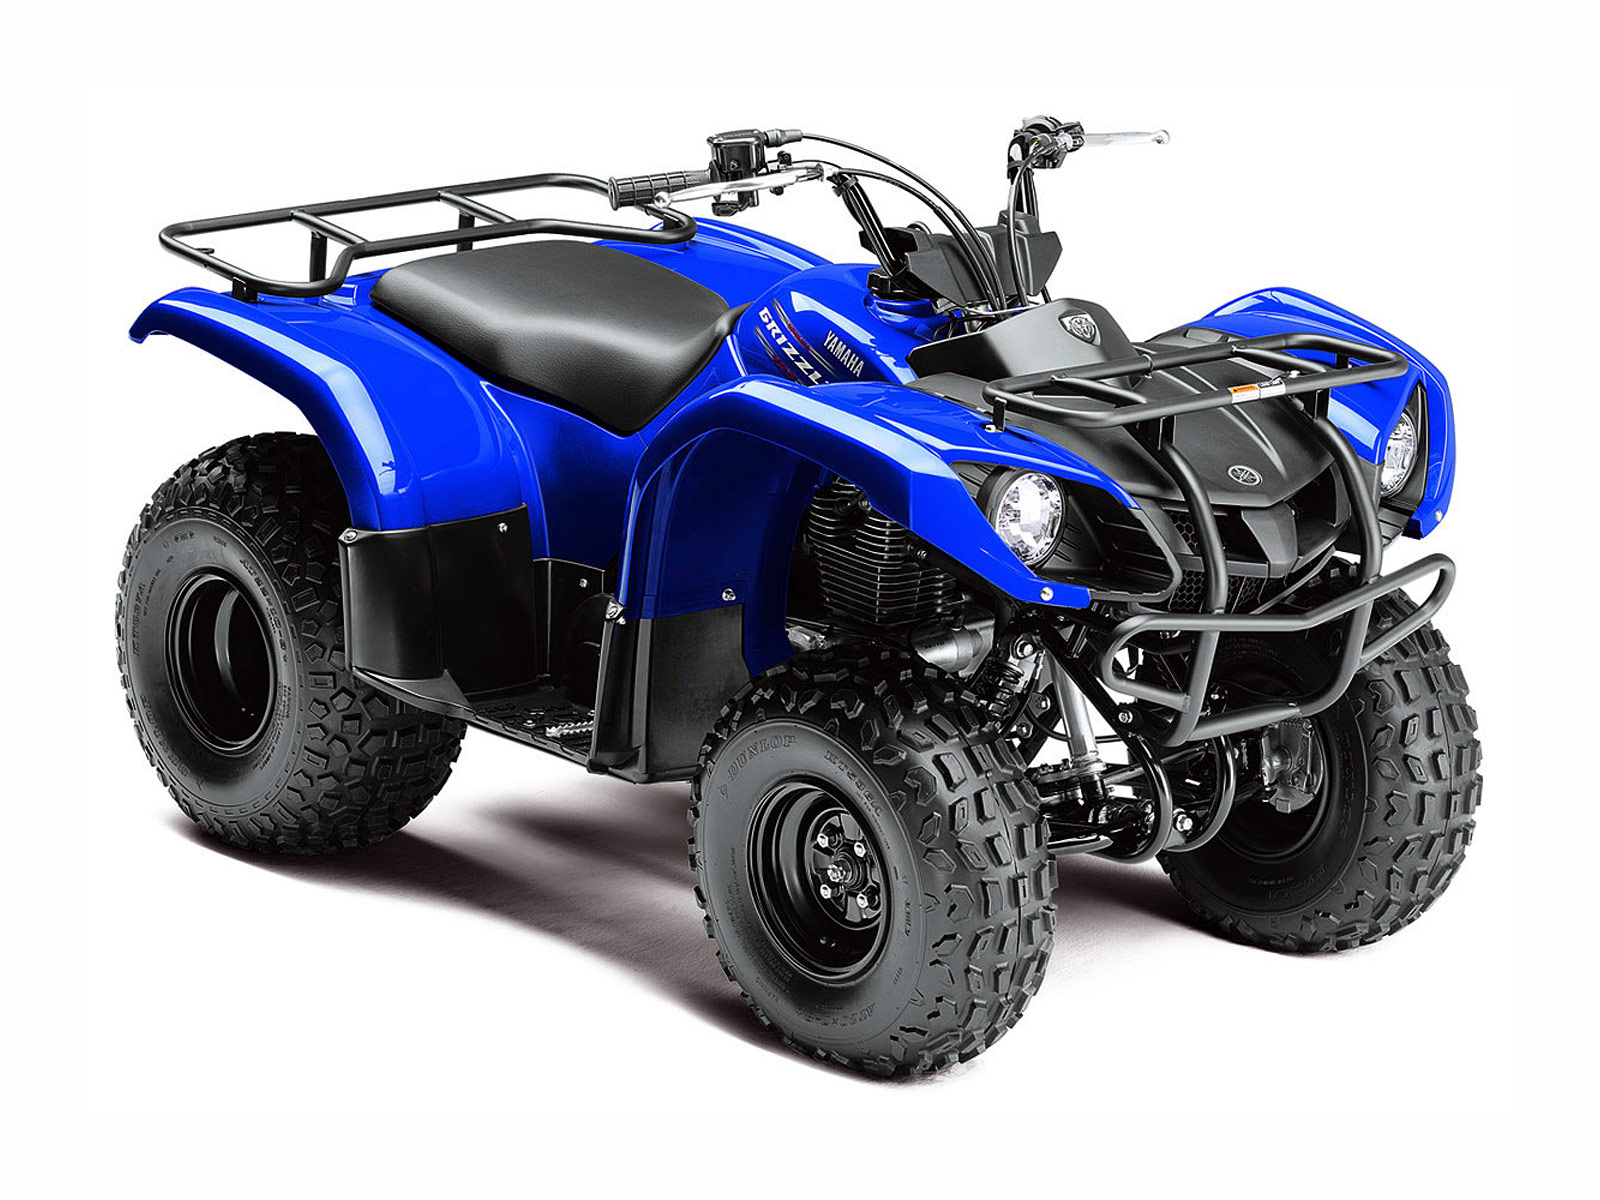 2012 Yamaha Grizzly 350 Auto Wallpaper PicsWallpapercom 1600x1200